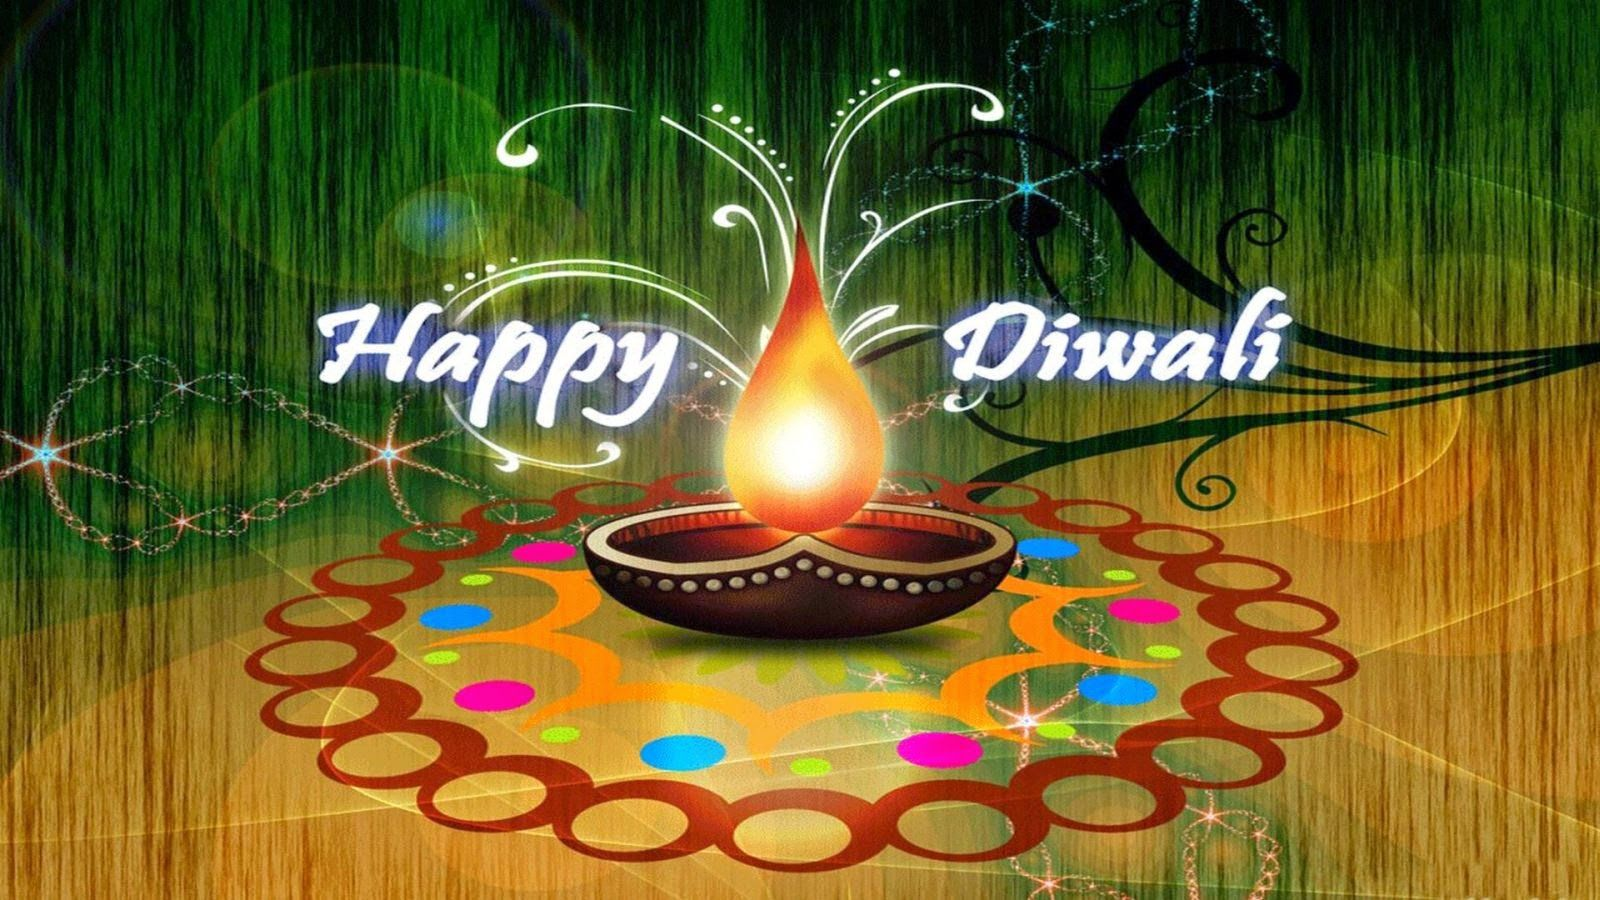 Wallpaper download diwali - Download Happy Diwali Images Picture And Hd Wallpapers Of Festival Of Light Deepawali Hd